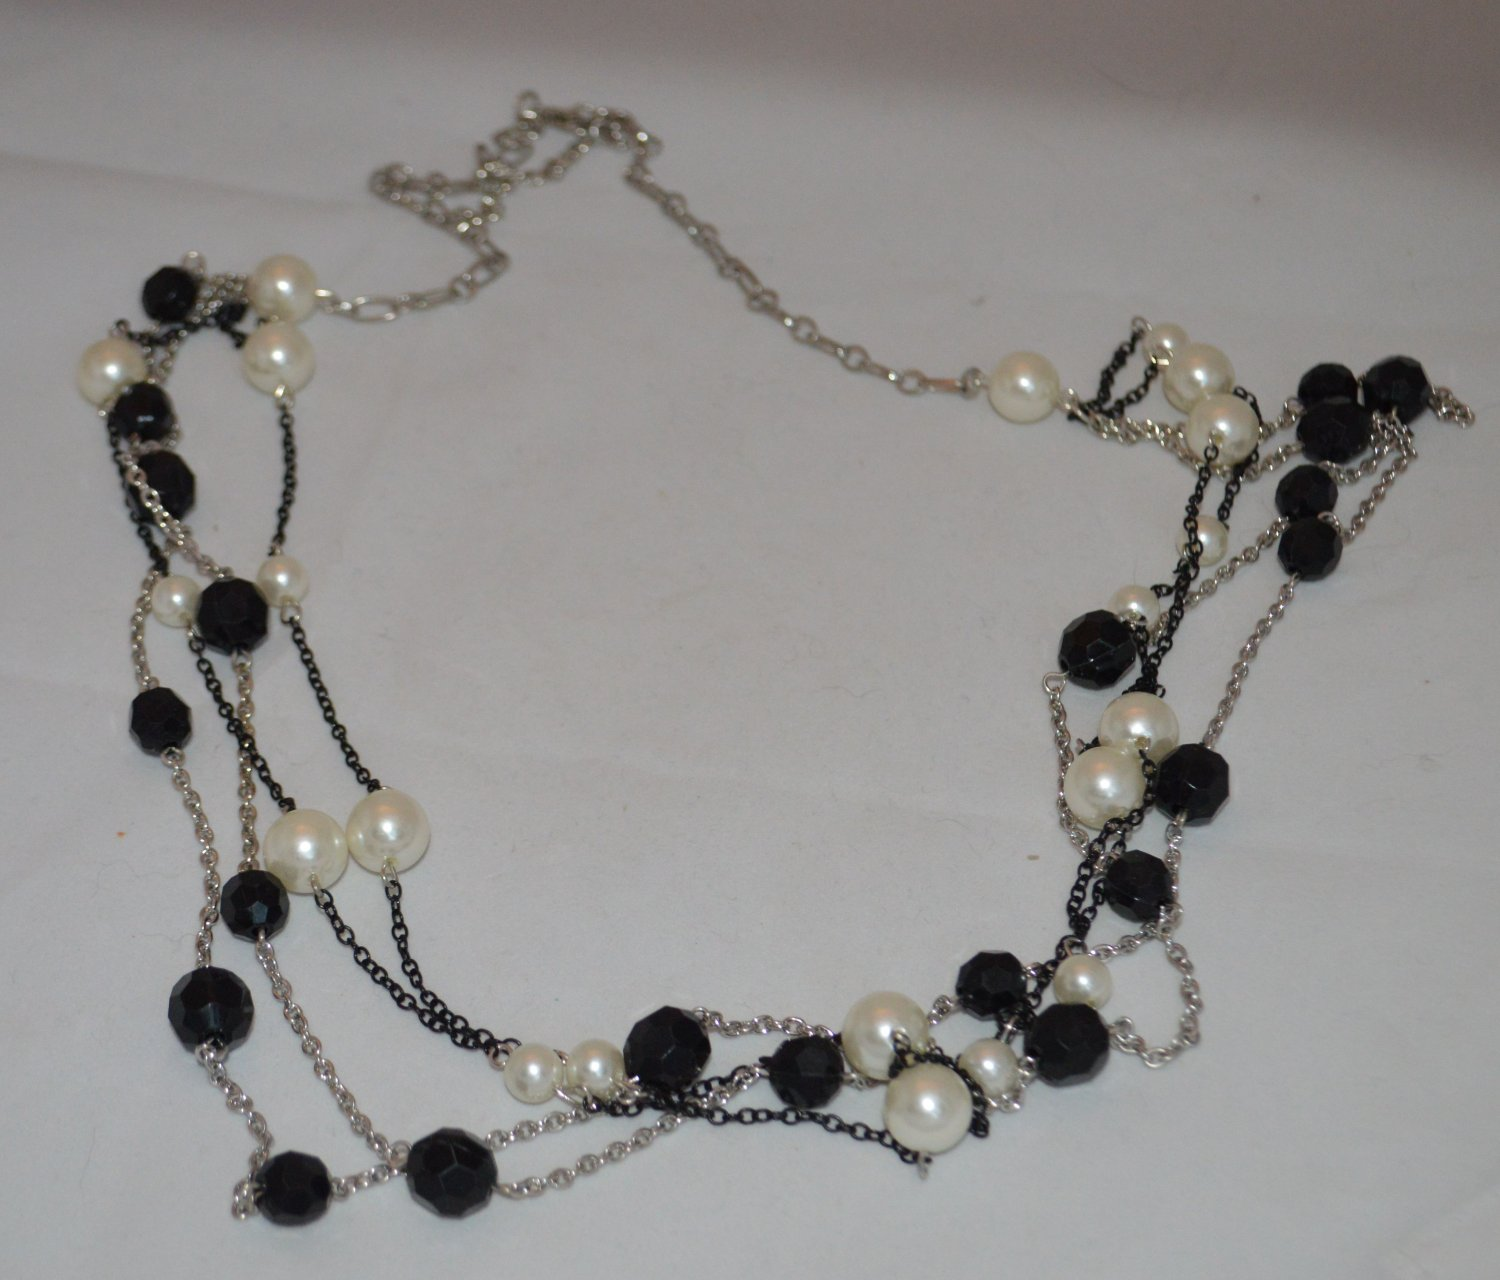 Pearl White & Black Beaded - Silver & Black chained  Layered Necklace